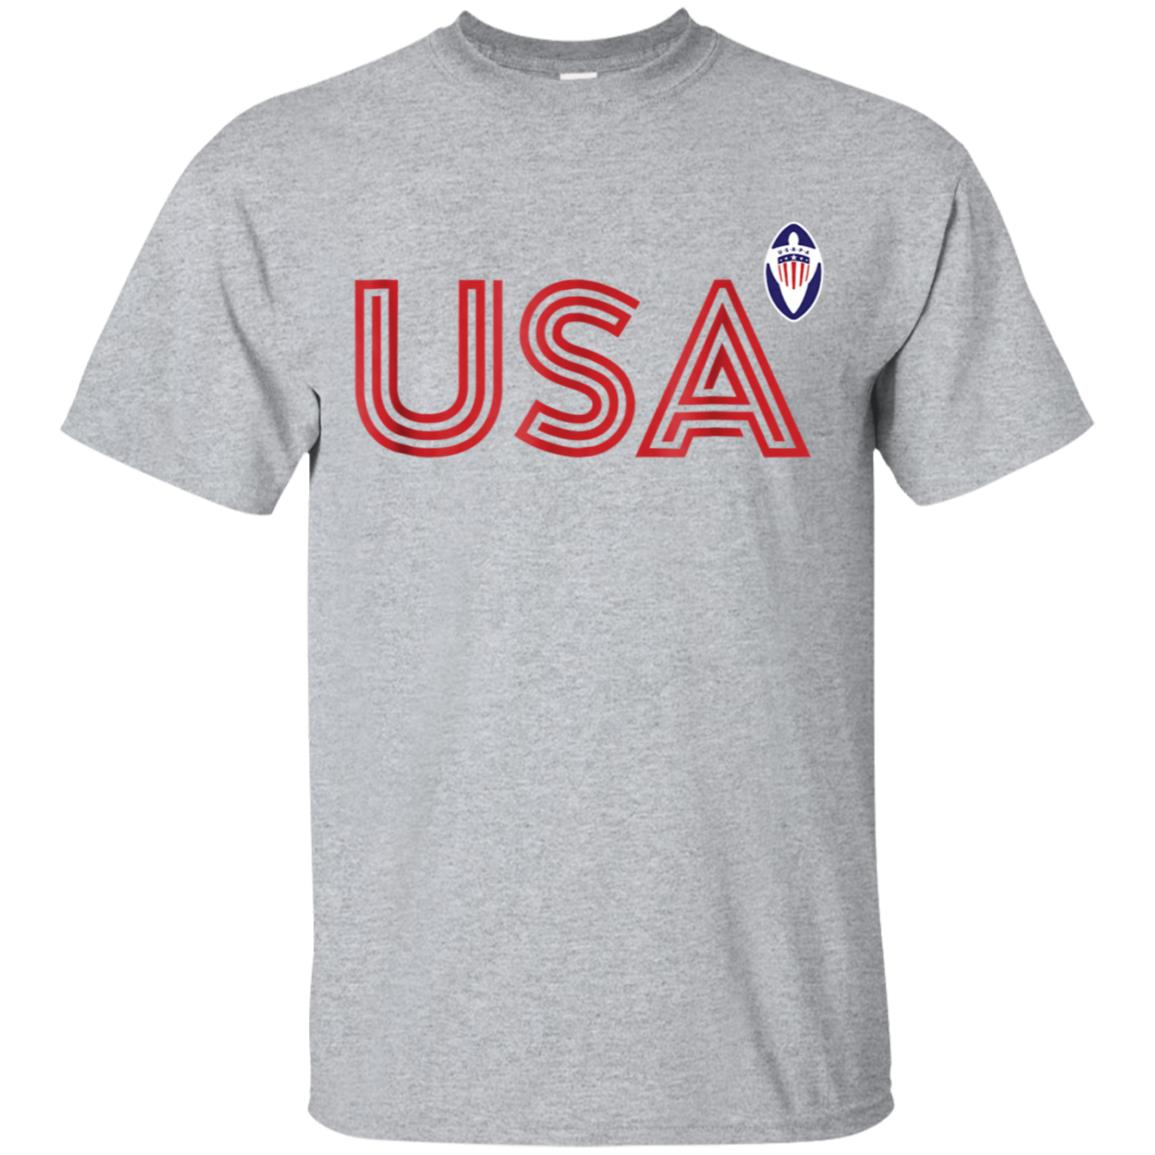 USA Rugby Players Emily Henrich Sport Tee 99promocode